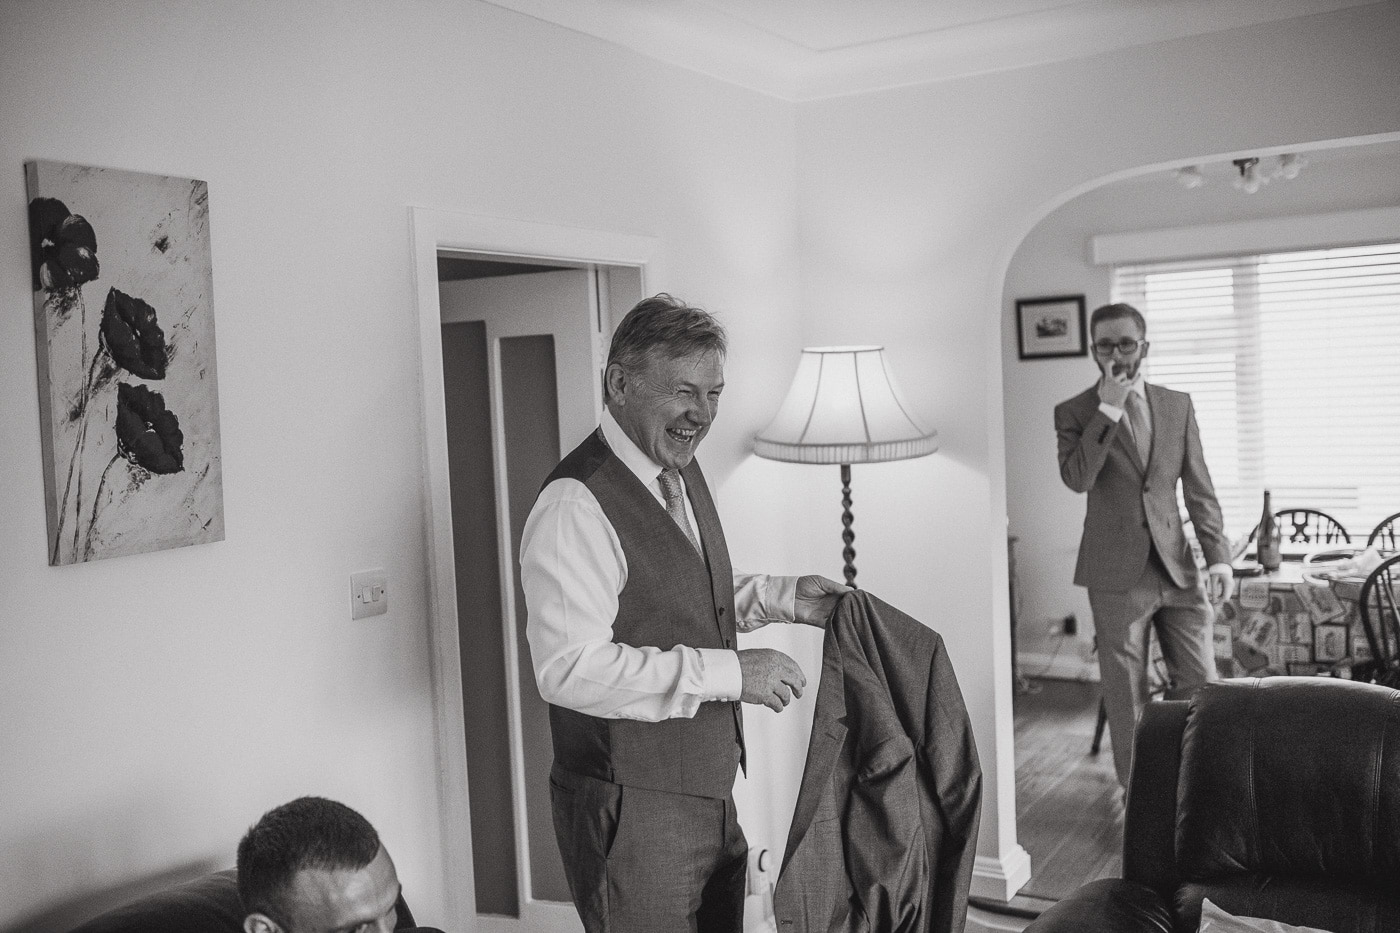 Getting ready and putting on jacketsby Joshua Wyborn wedding photographer